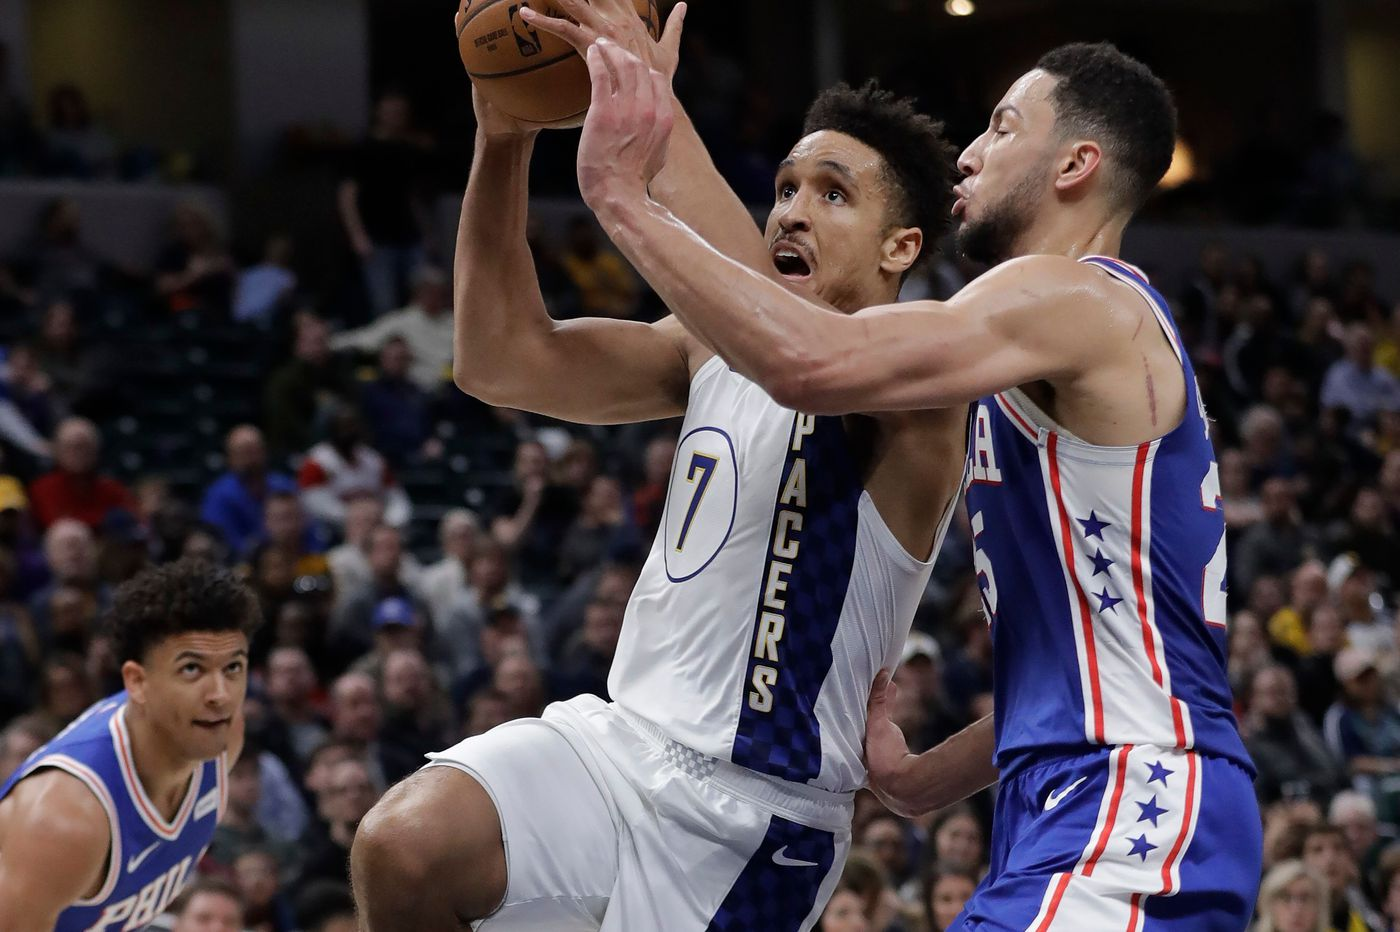 Sixers fall to Indiana Pacers, marking sixth straight road loss